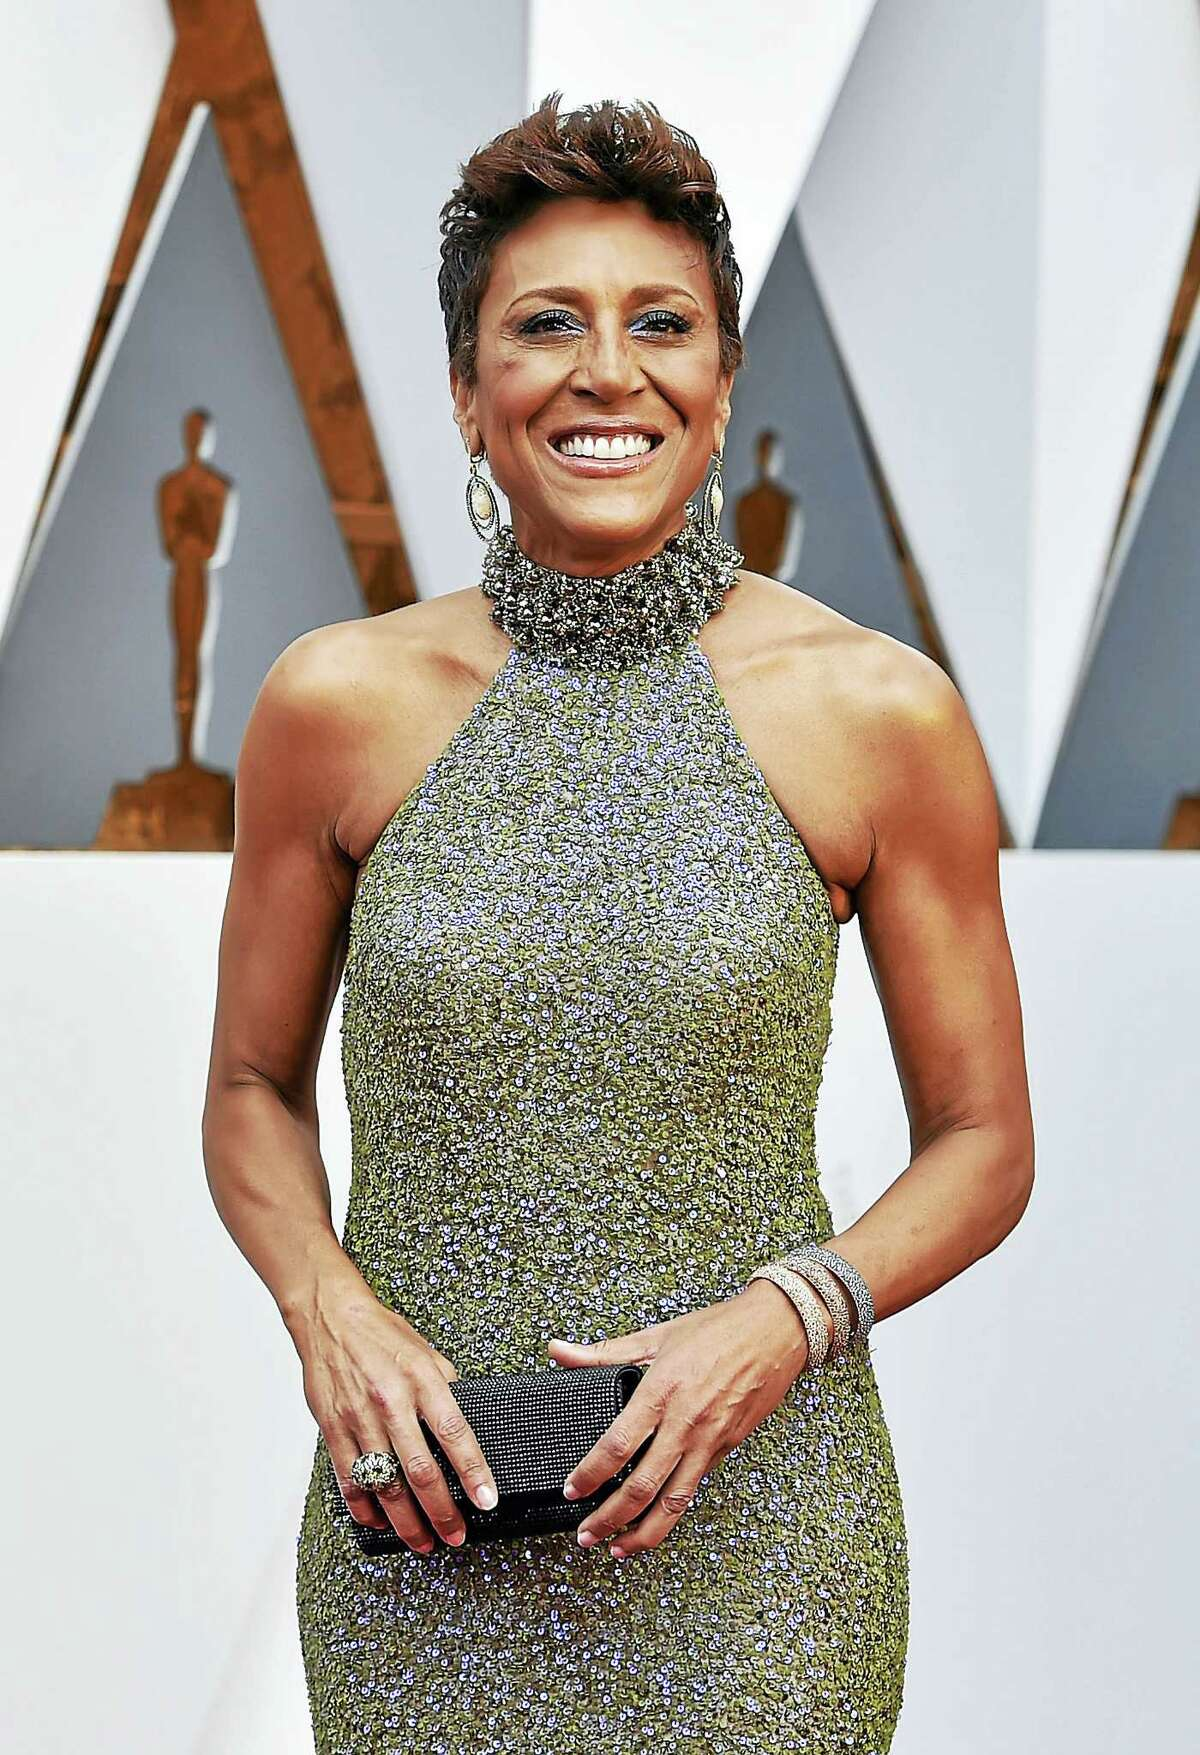 Robin Roberts arrives at the Oscars on Feb. 28 at the Dolby Theatre in Los Angeles.